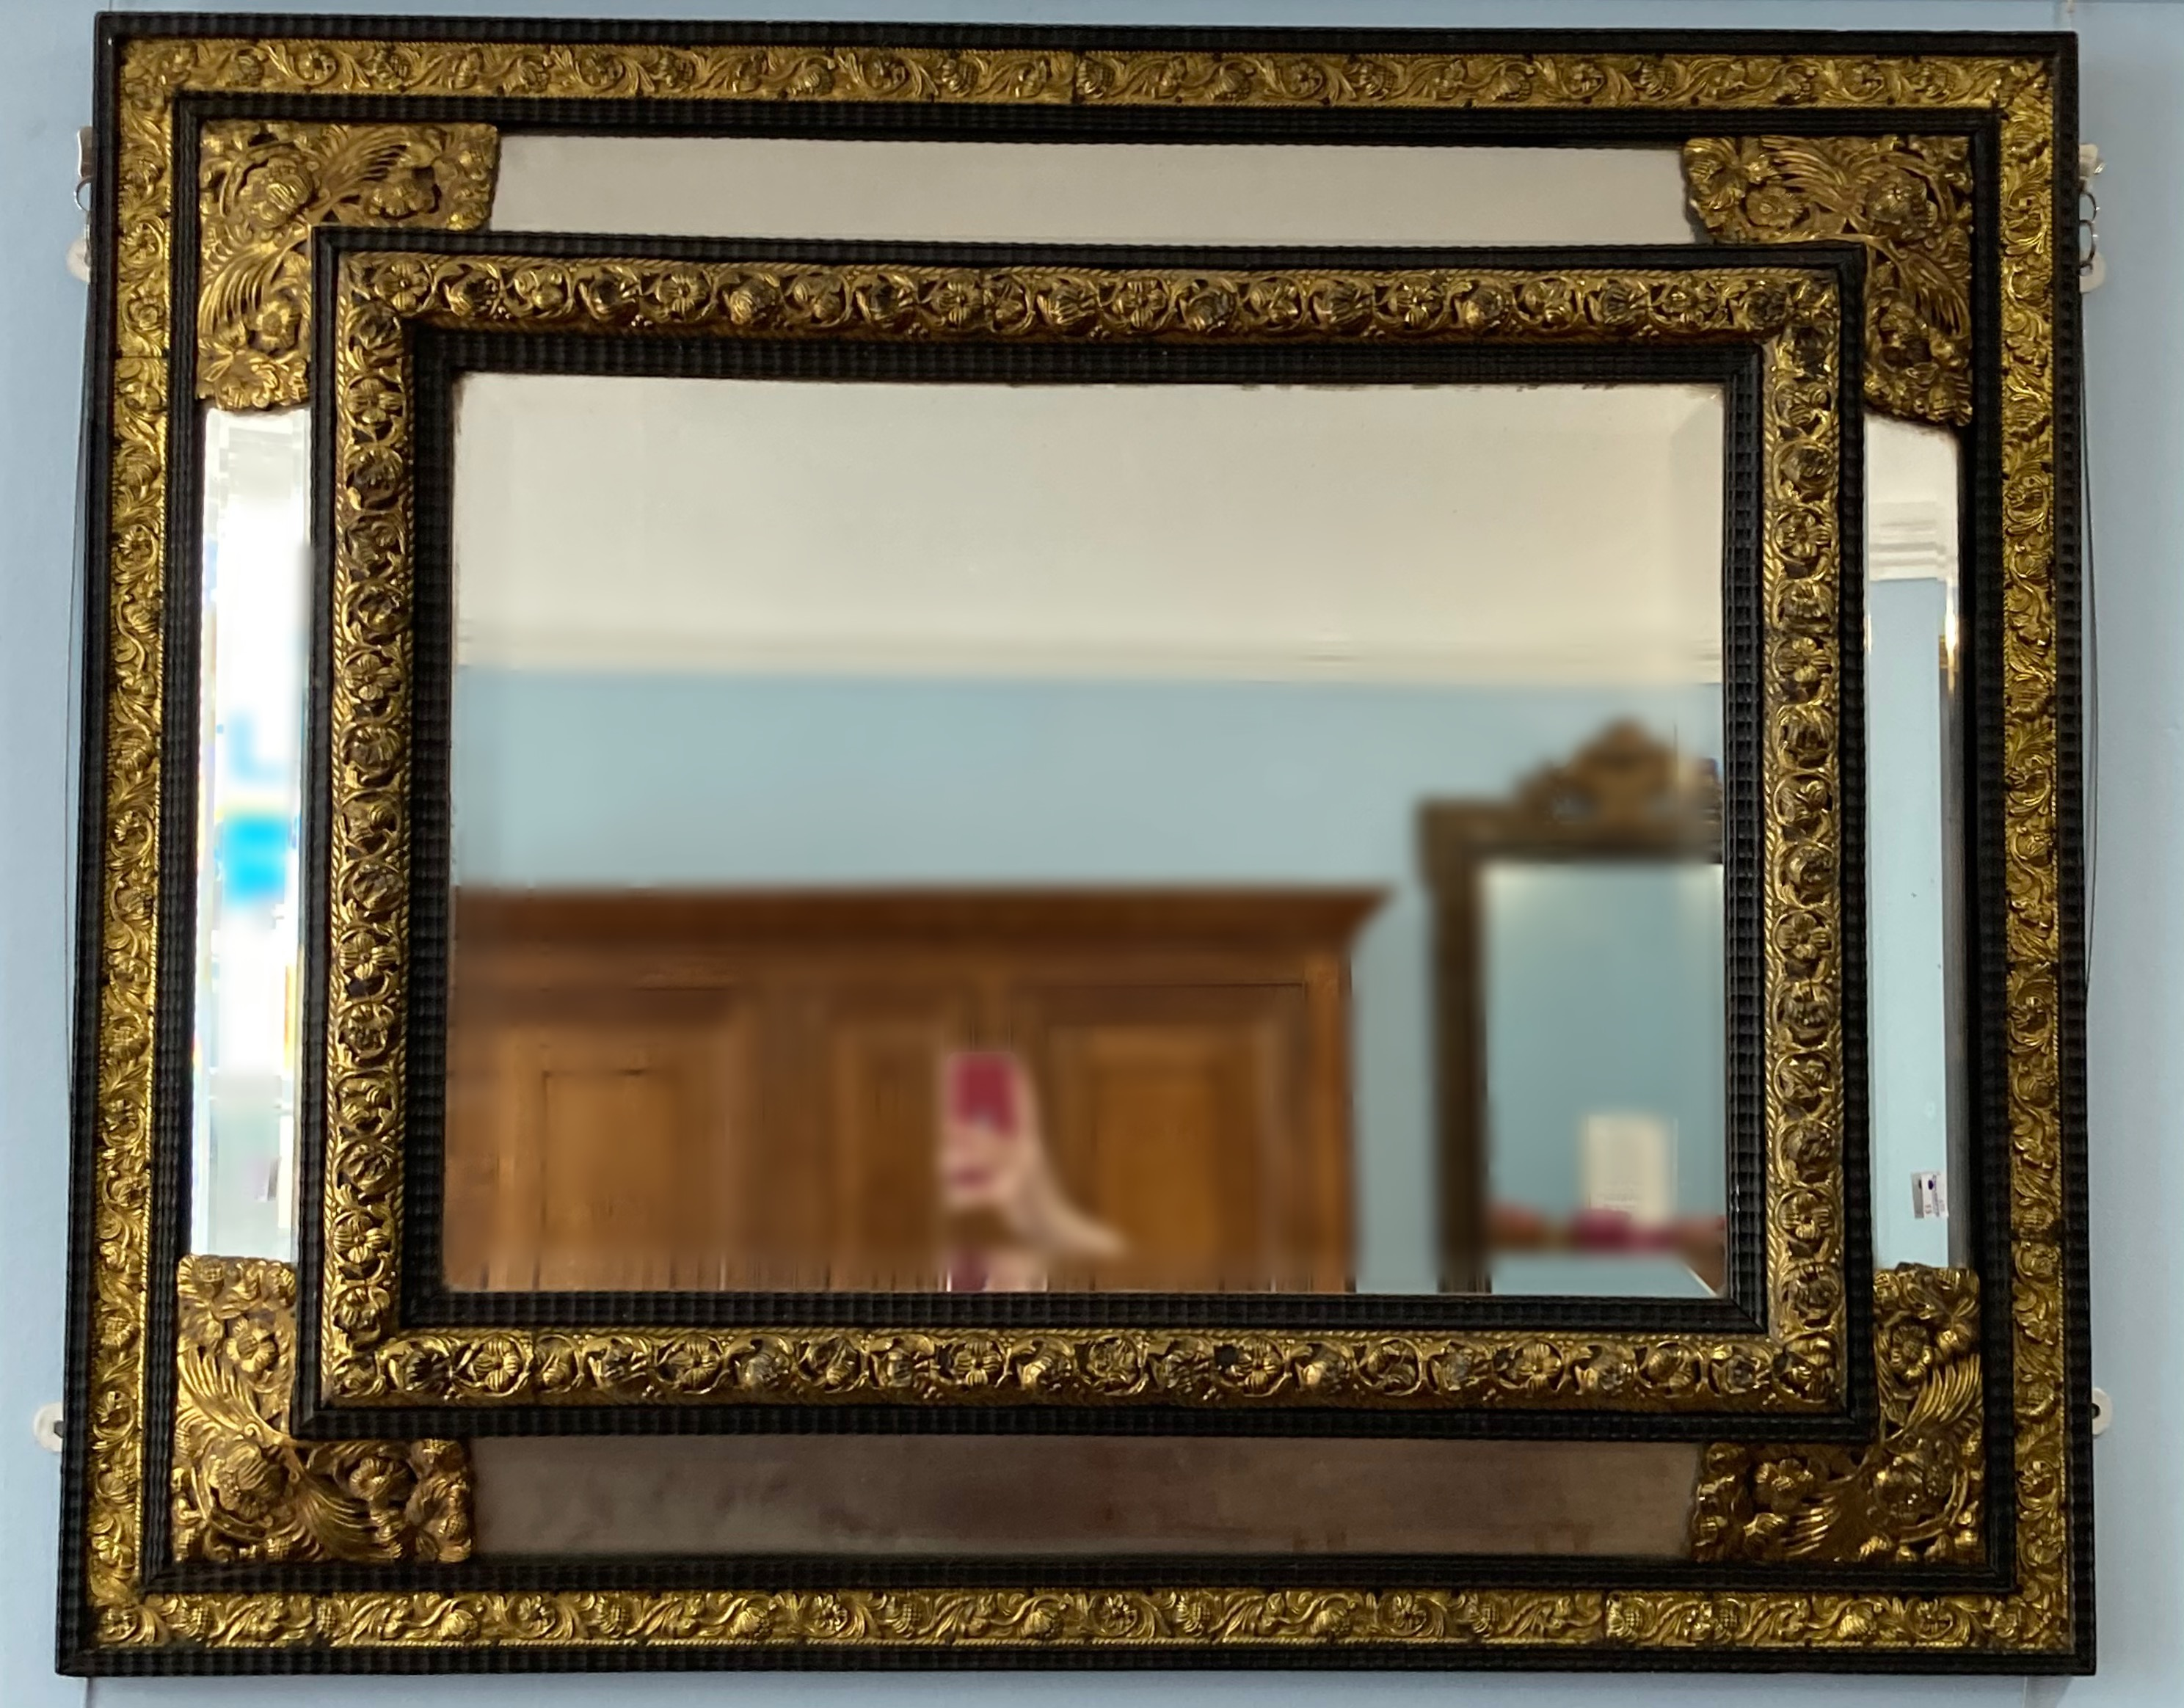 An early 20thC ornate rectangular five-plate bevelled edged Wall Mirror, the frame formed of